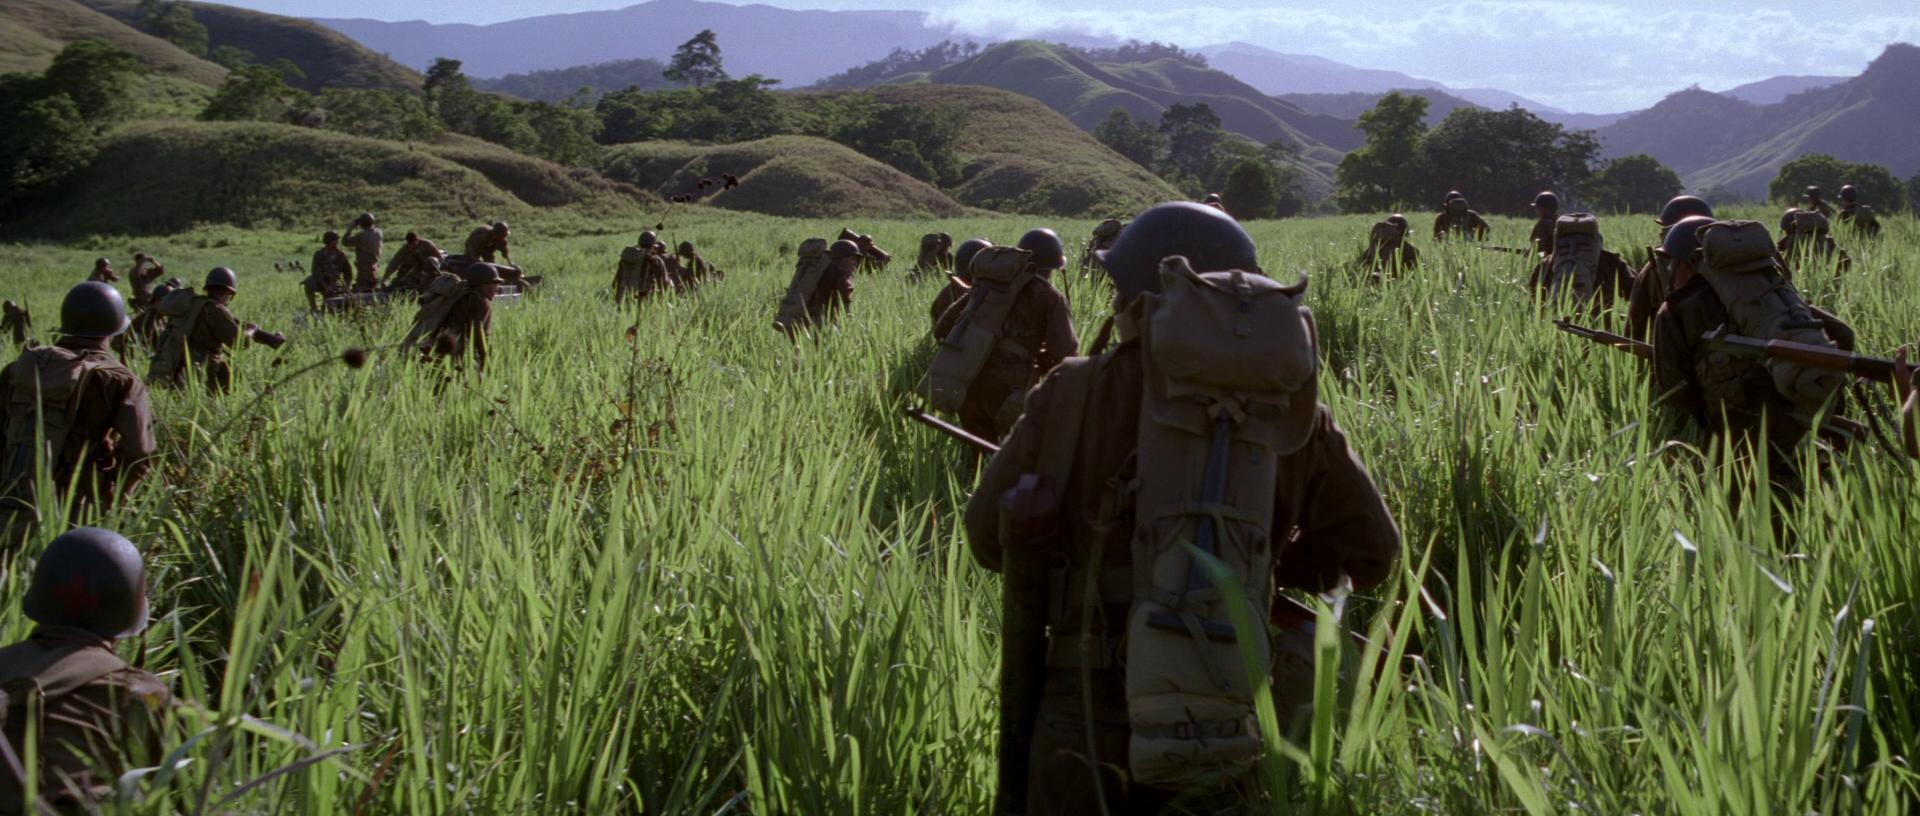 Terrence Malick's 'The Thin Red Line': The Traumatic and Poetic ...